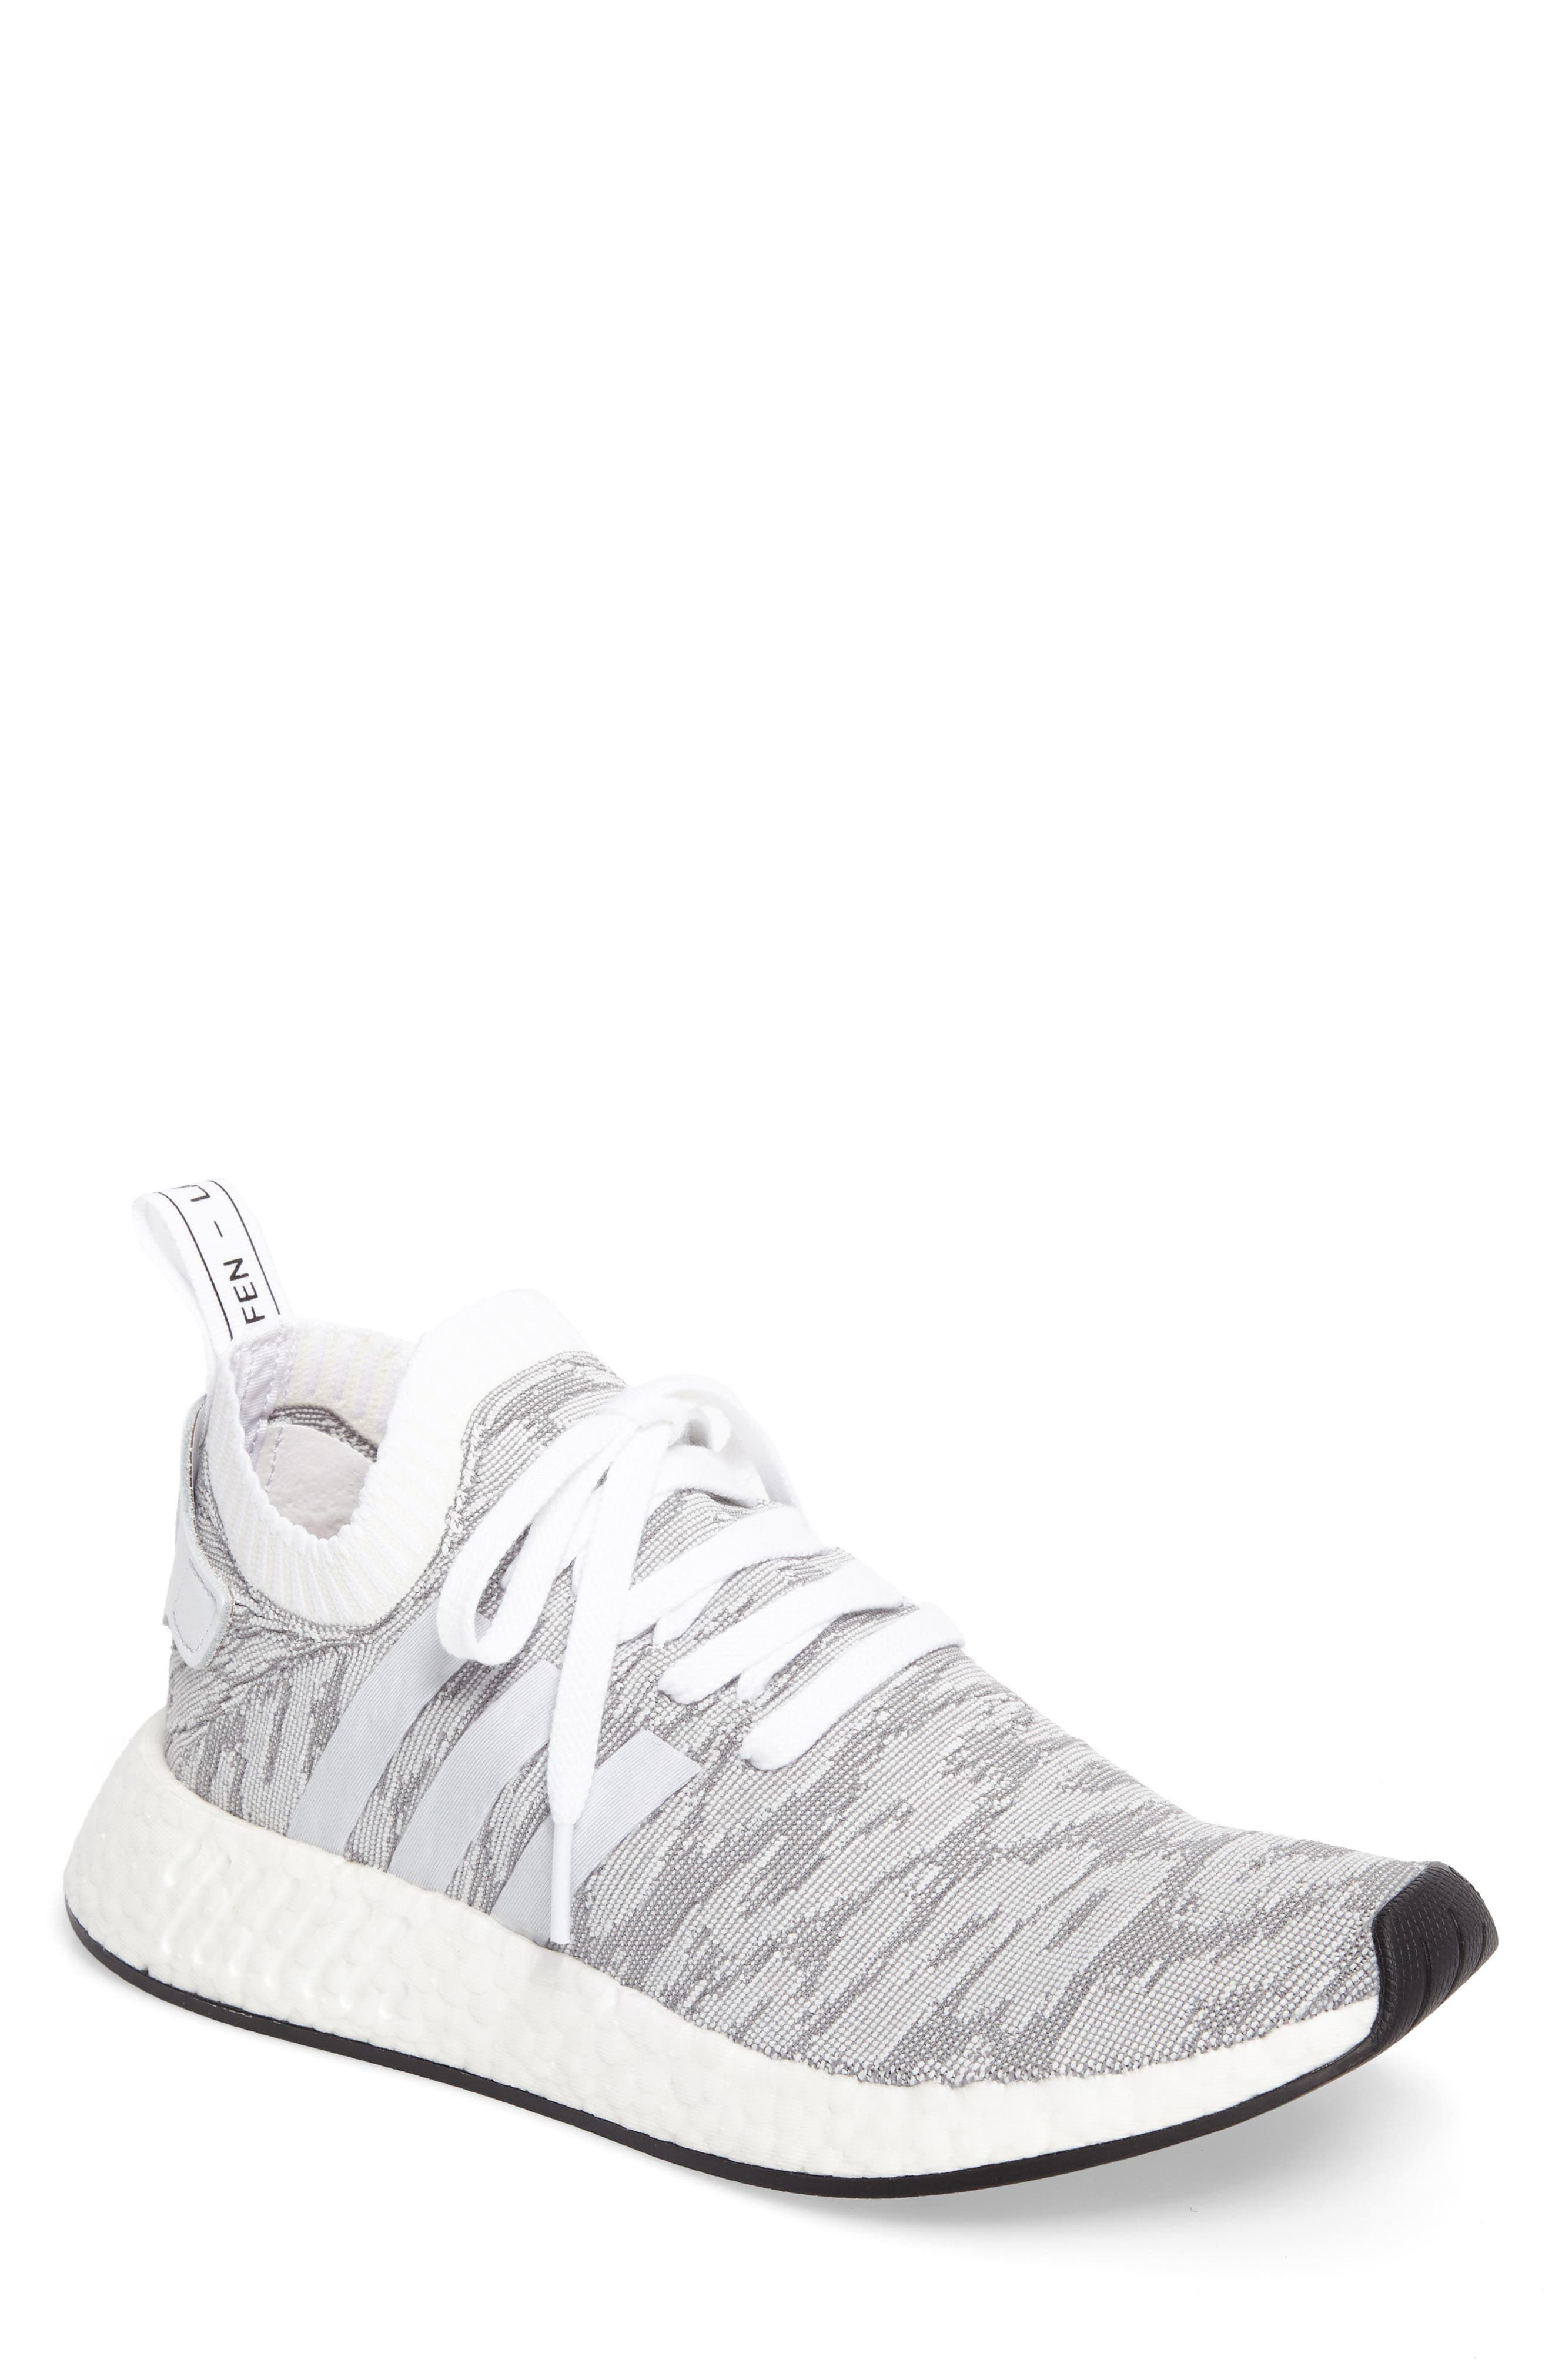 NMD R2 Primeknit Running Shoe,                             Main thumbnail 1, color,                             White/ White/ Core Black